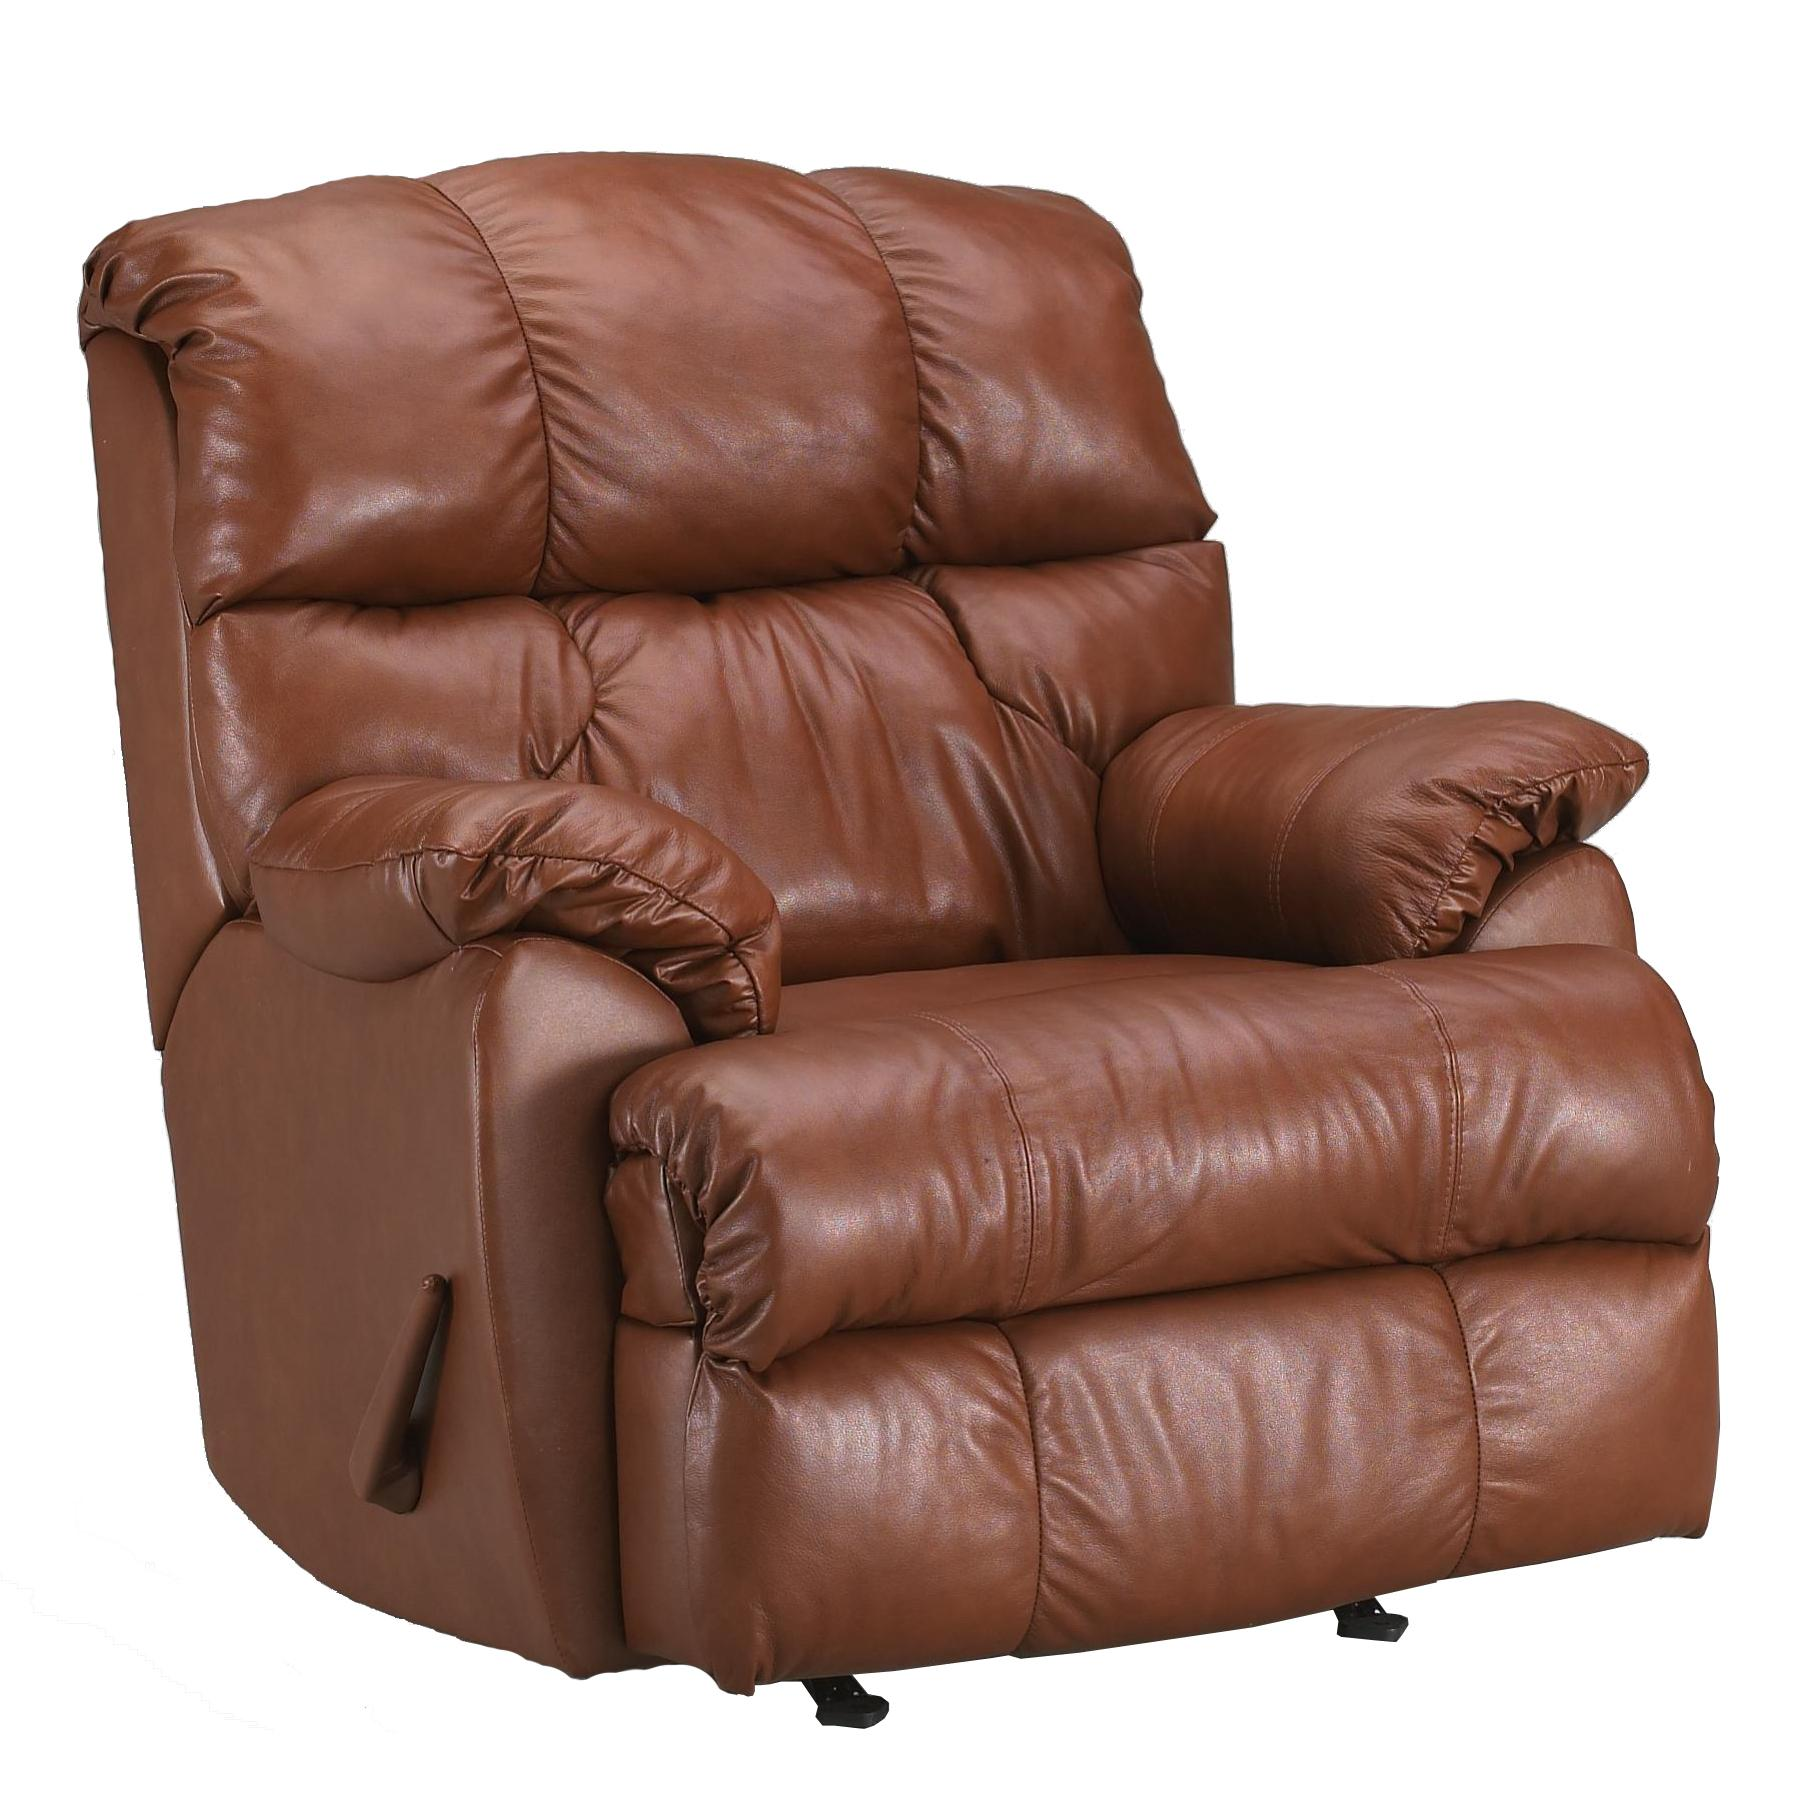 Casual Rocking Recliner Chair